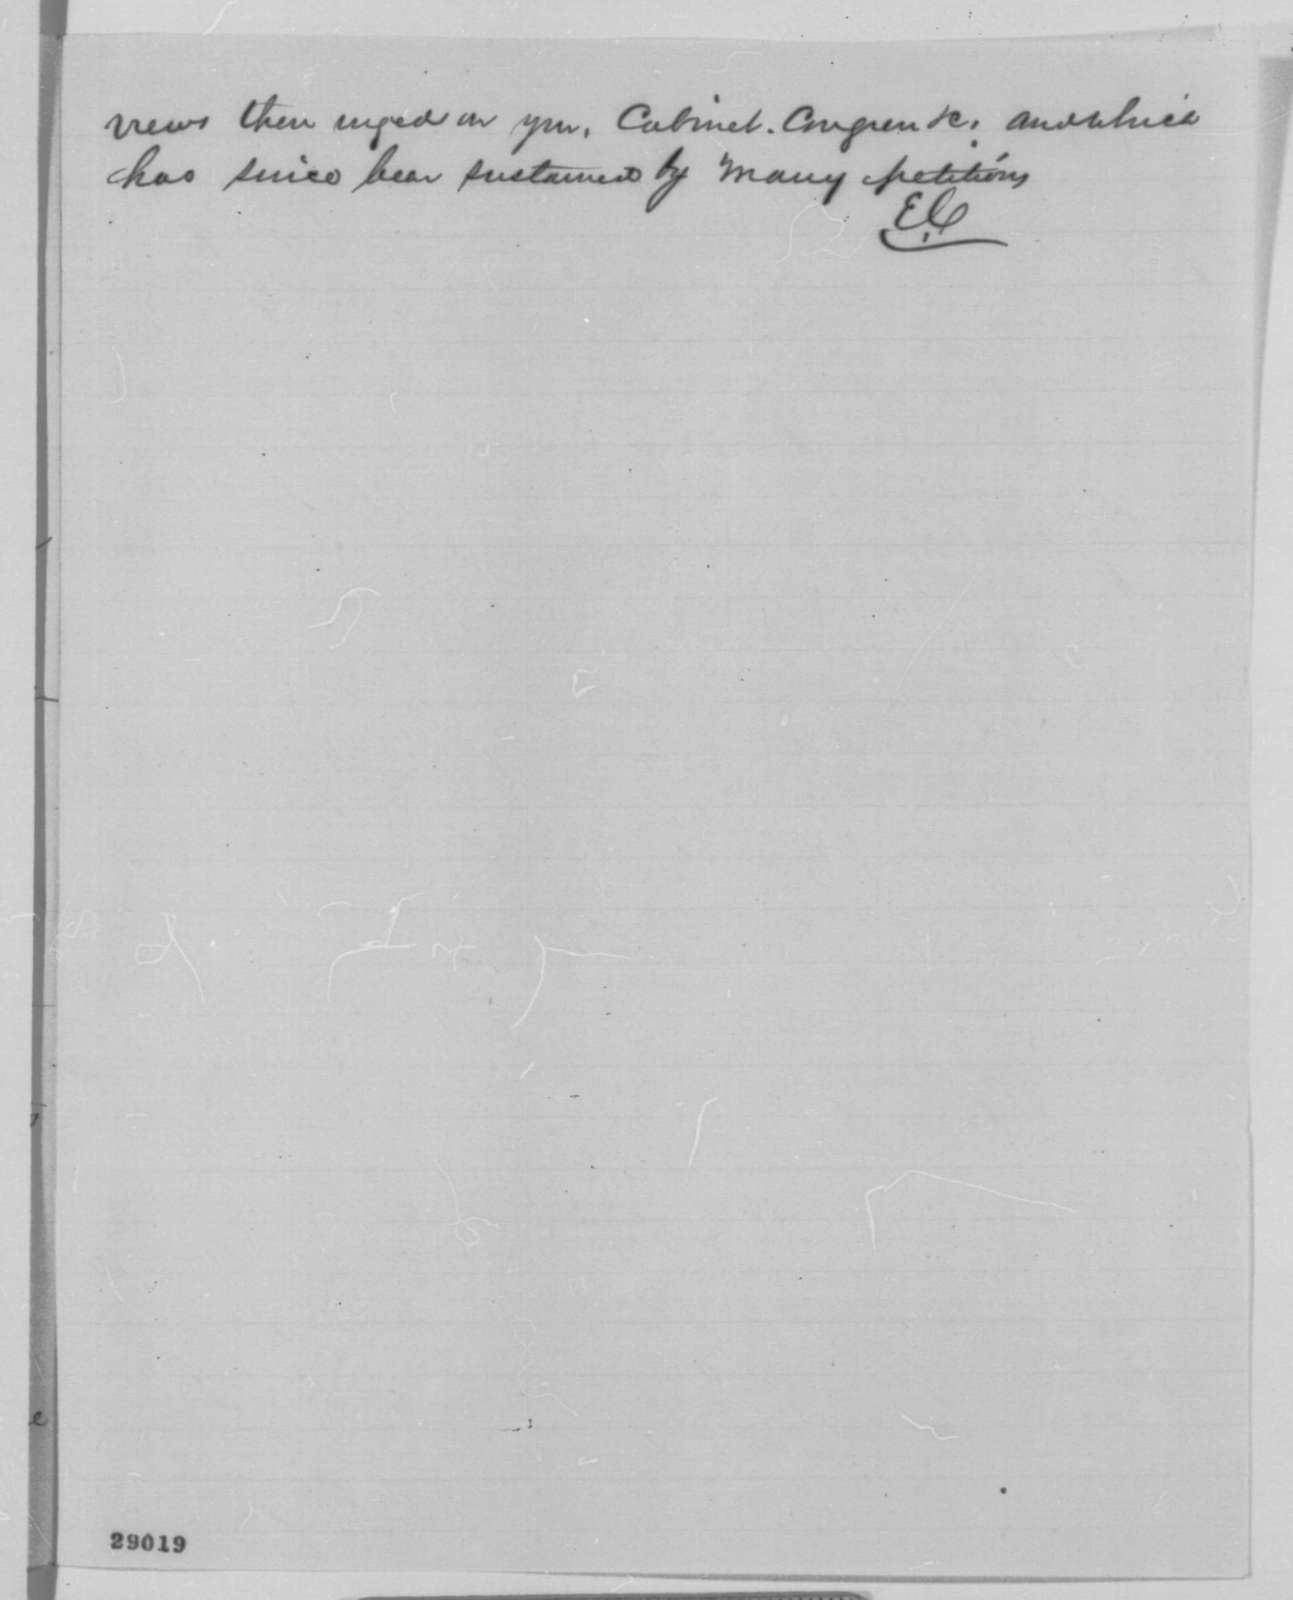 Edgar Conkling to Abraham Lincoln, Thursday, December 31, 1863  (Minerals in the Rocky Mountains)